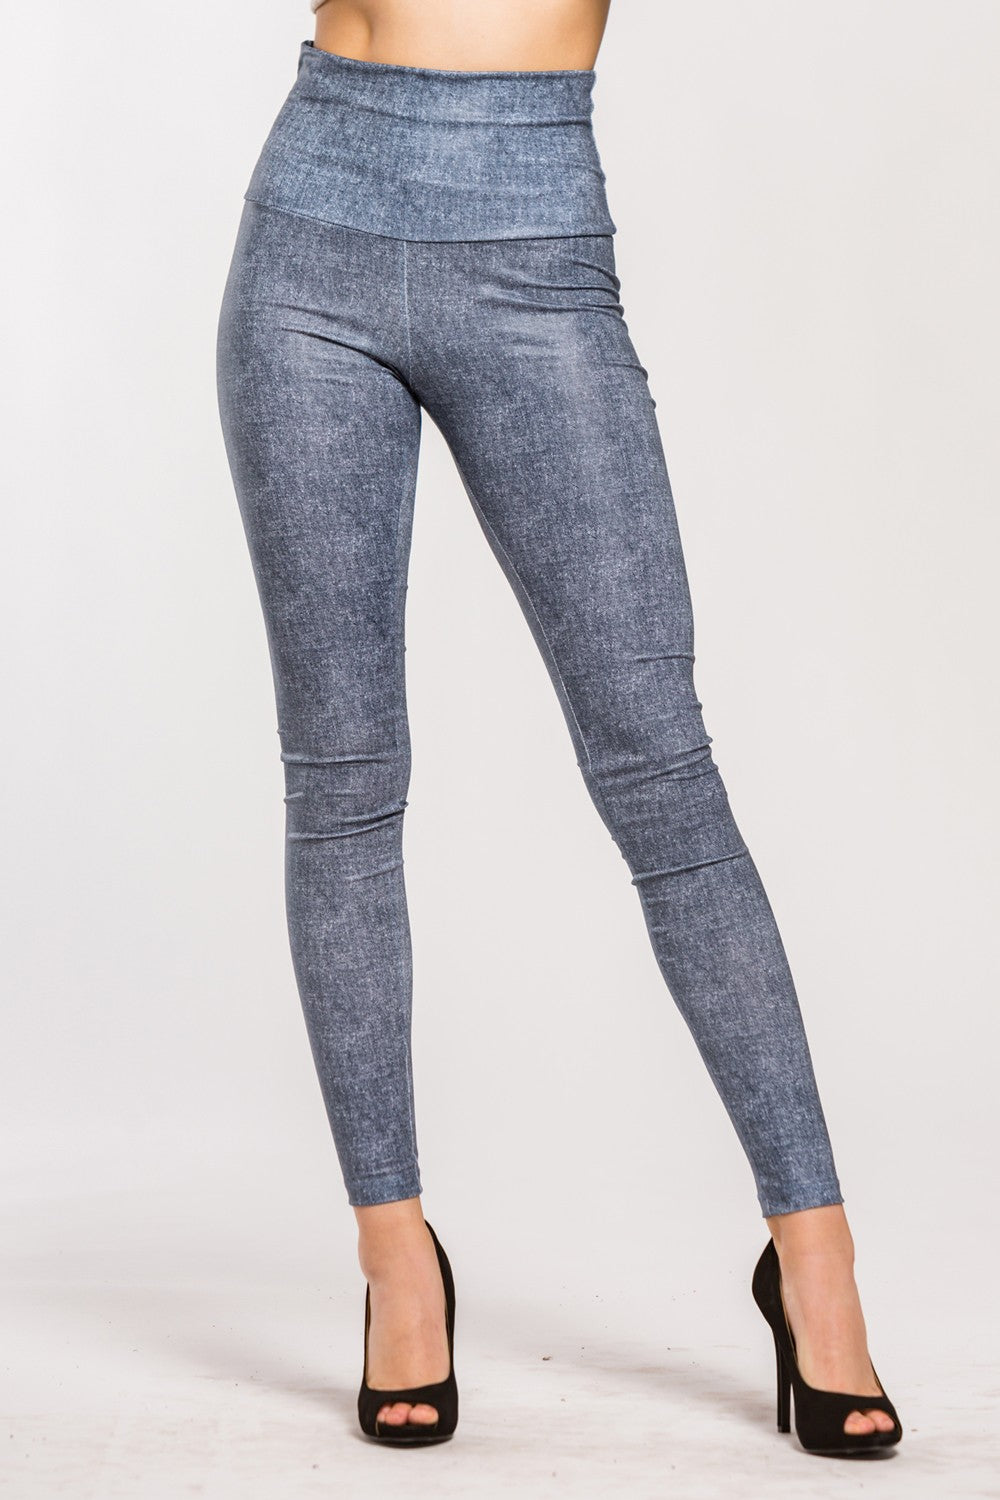 The Denim Landry Leggings